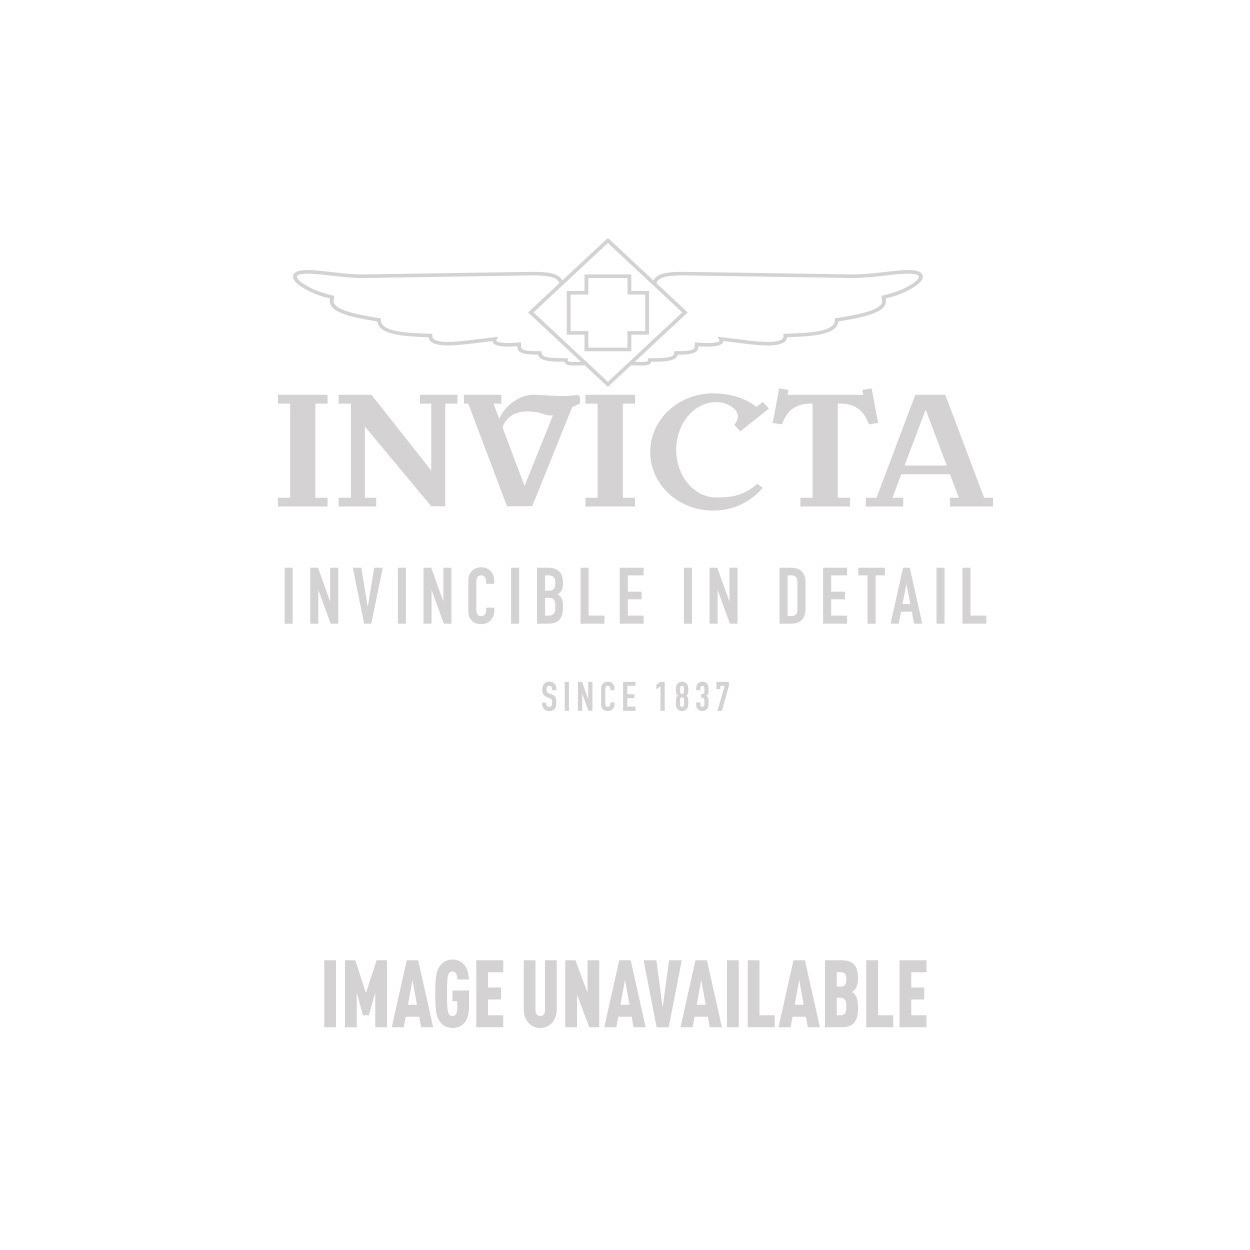 Invicta I-Force Quartz Watch - Gold case with Cognac tone Leather band - Model 12824